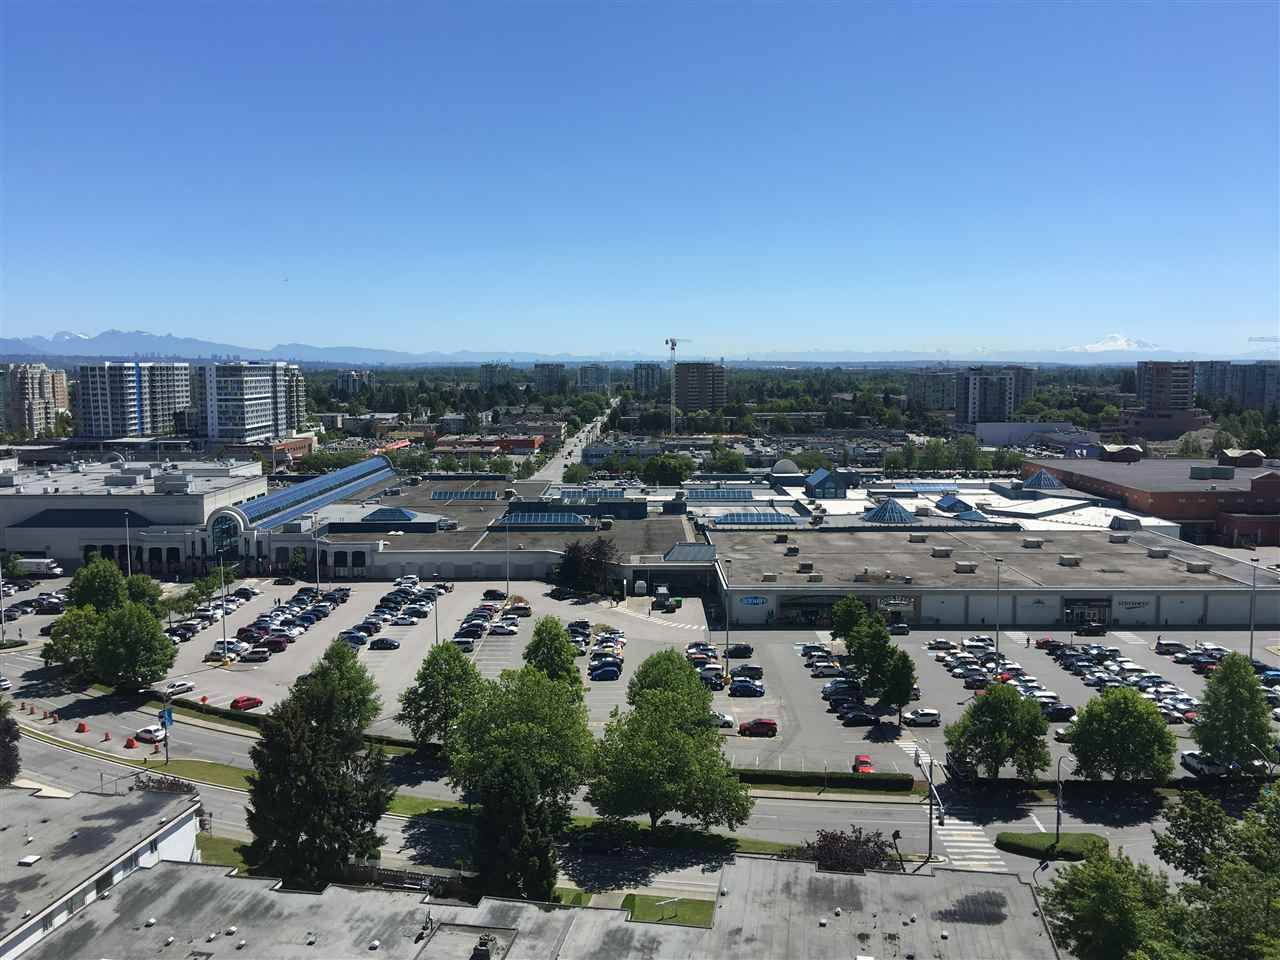 """Main Photo: 1602 6611 MINORU Boulevard in Richmond: Brighouse Condo for sale in """"REGENCY PARK TOWERS"""" : MLS®# R2077076"""